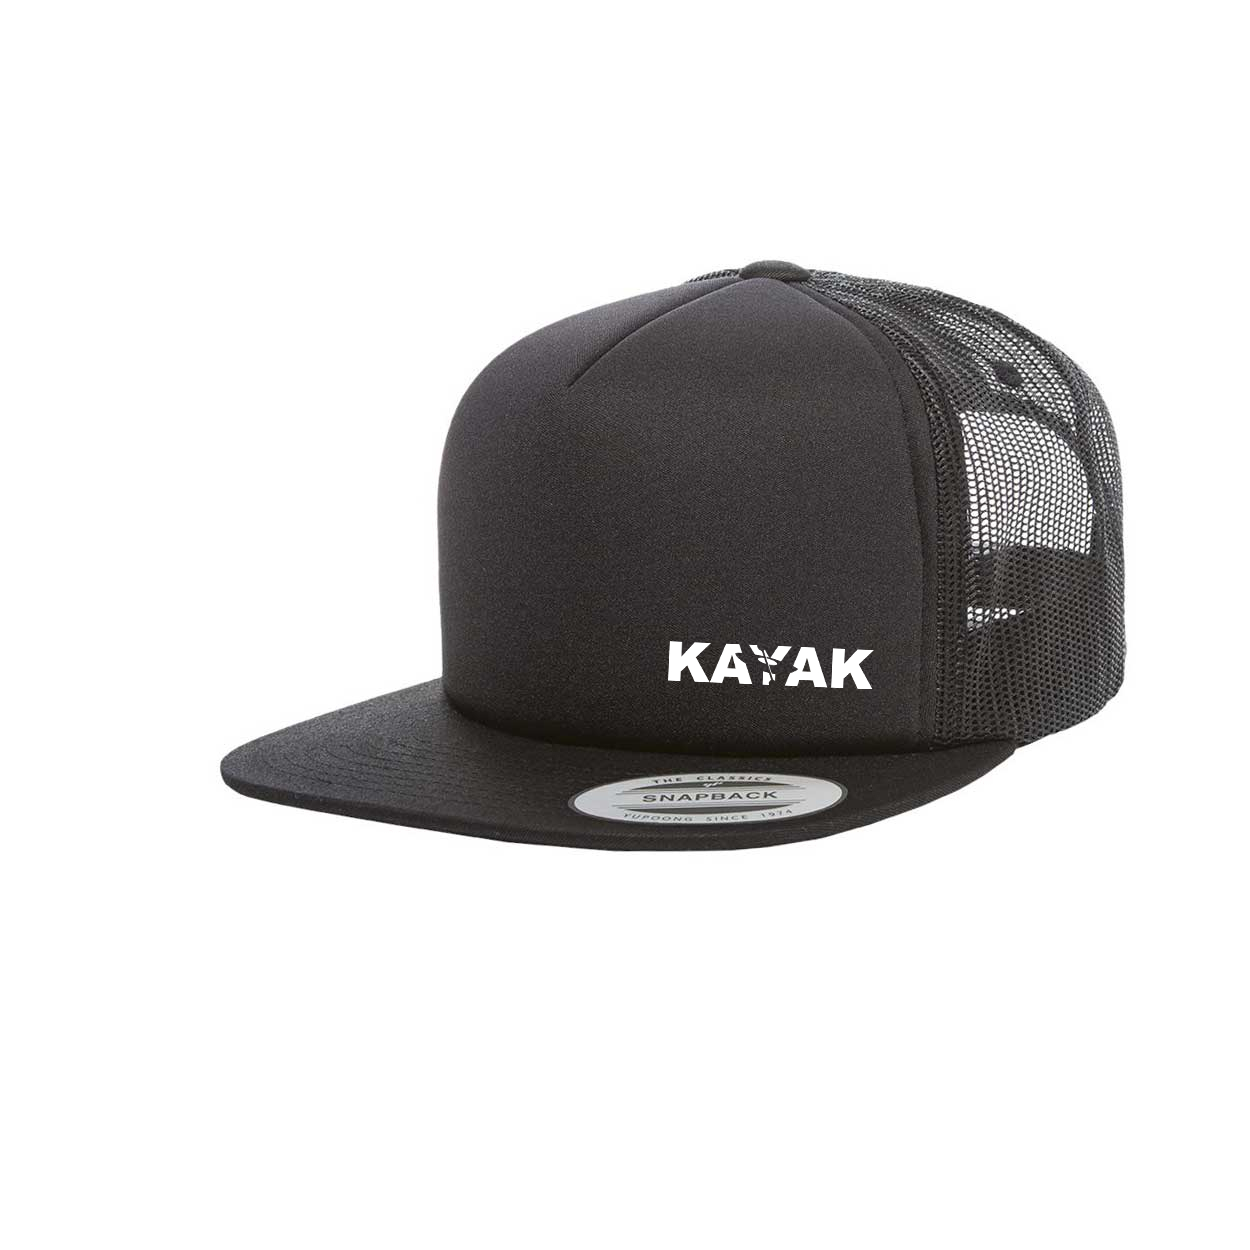 Kayak Hull Logo Night Out Premium Foam Flat Brim Snapback Hat Black (White Logo)